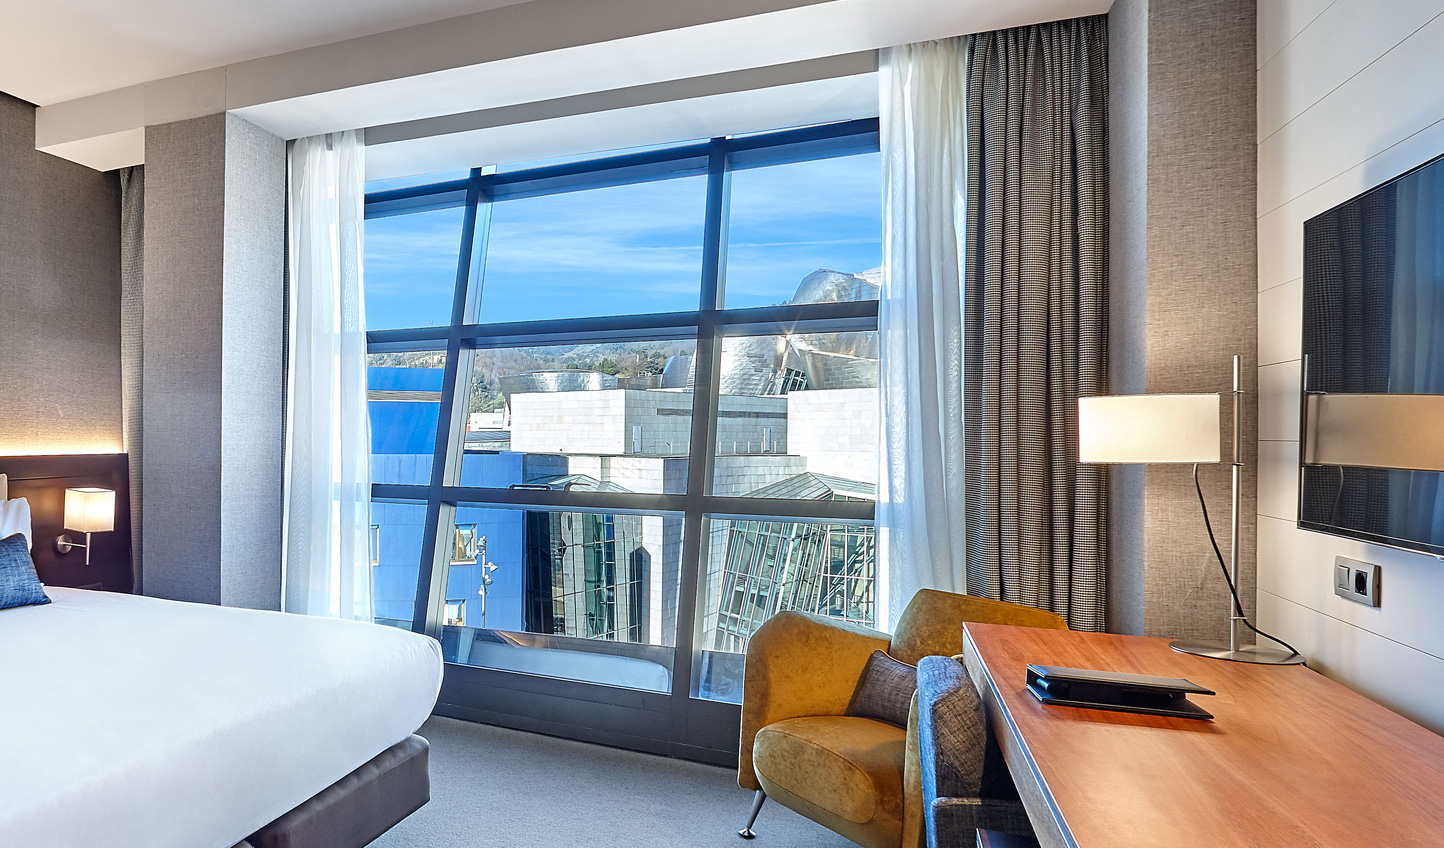 Wake up to stunning city views